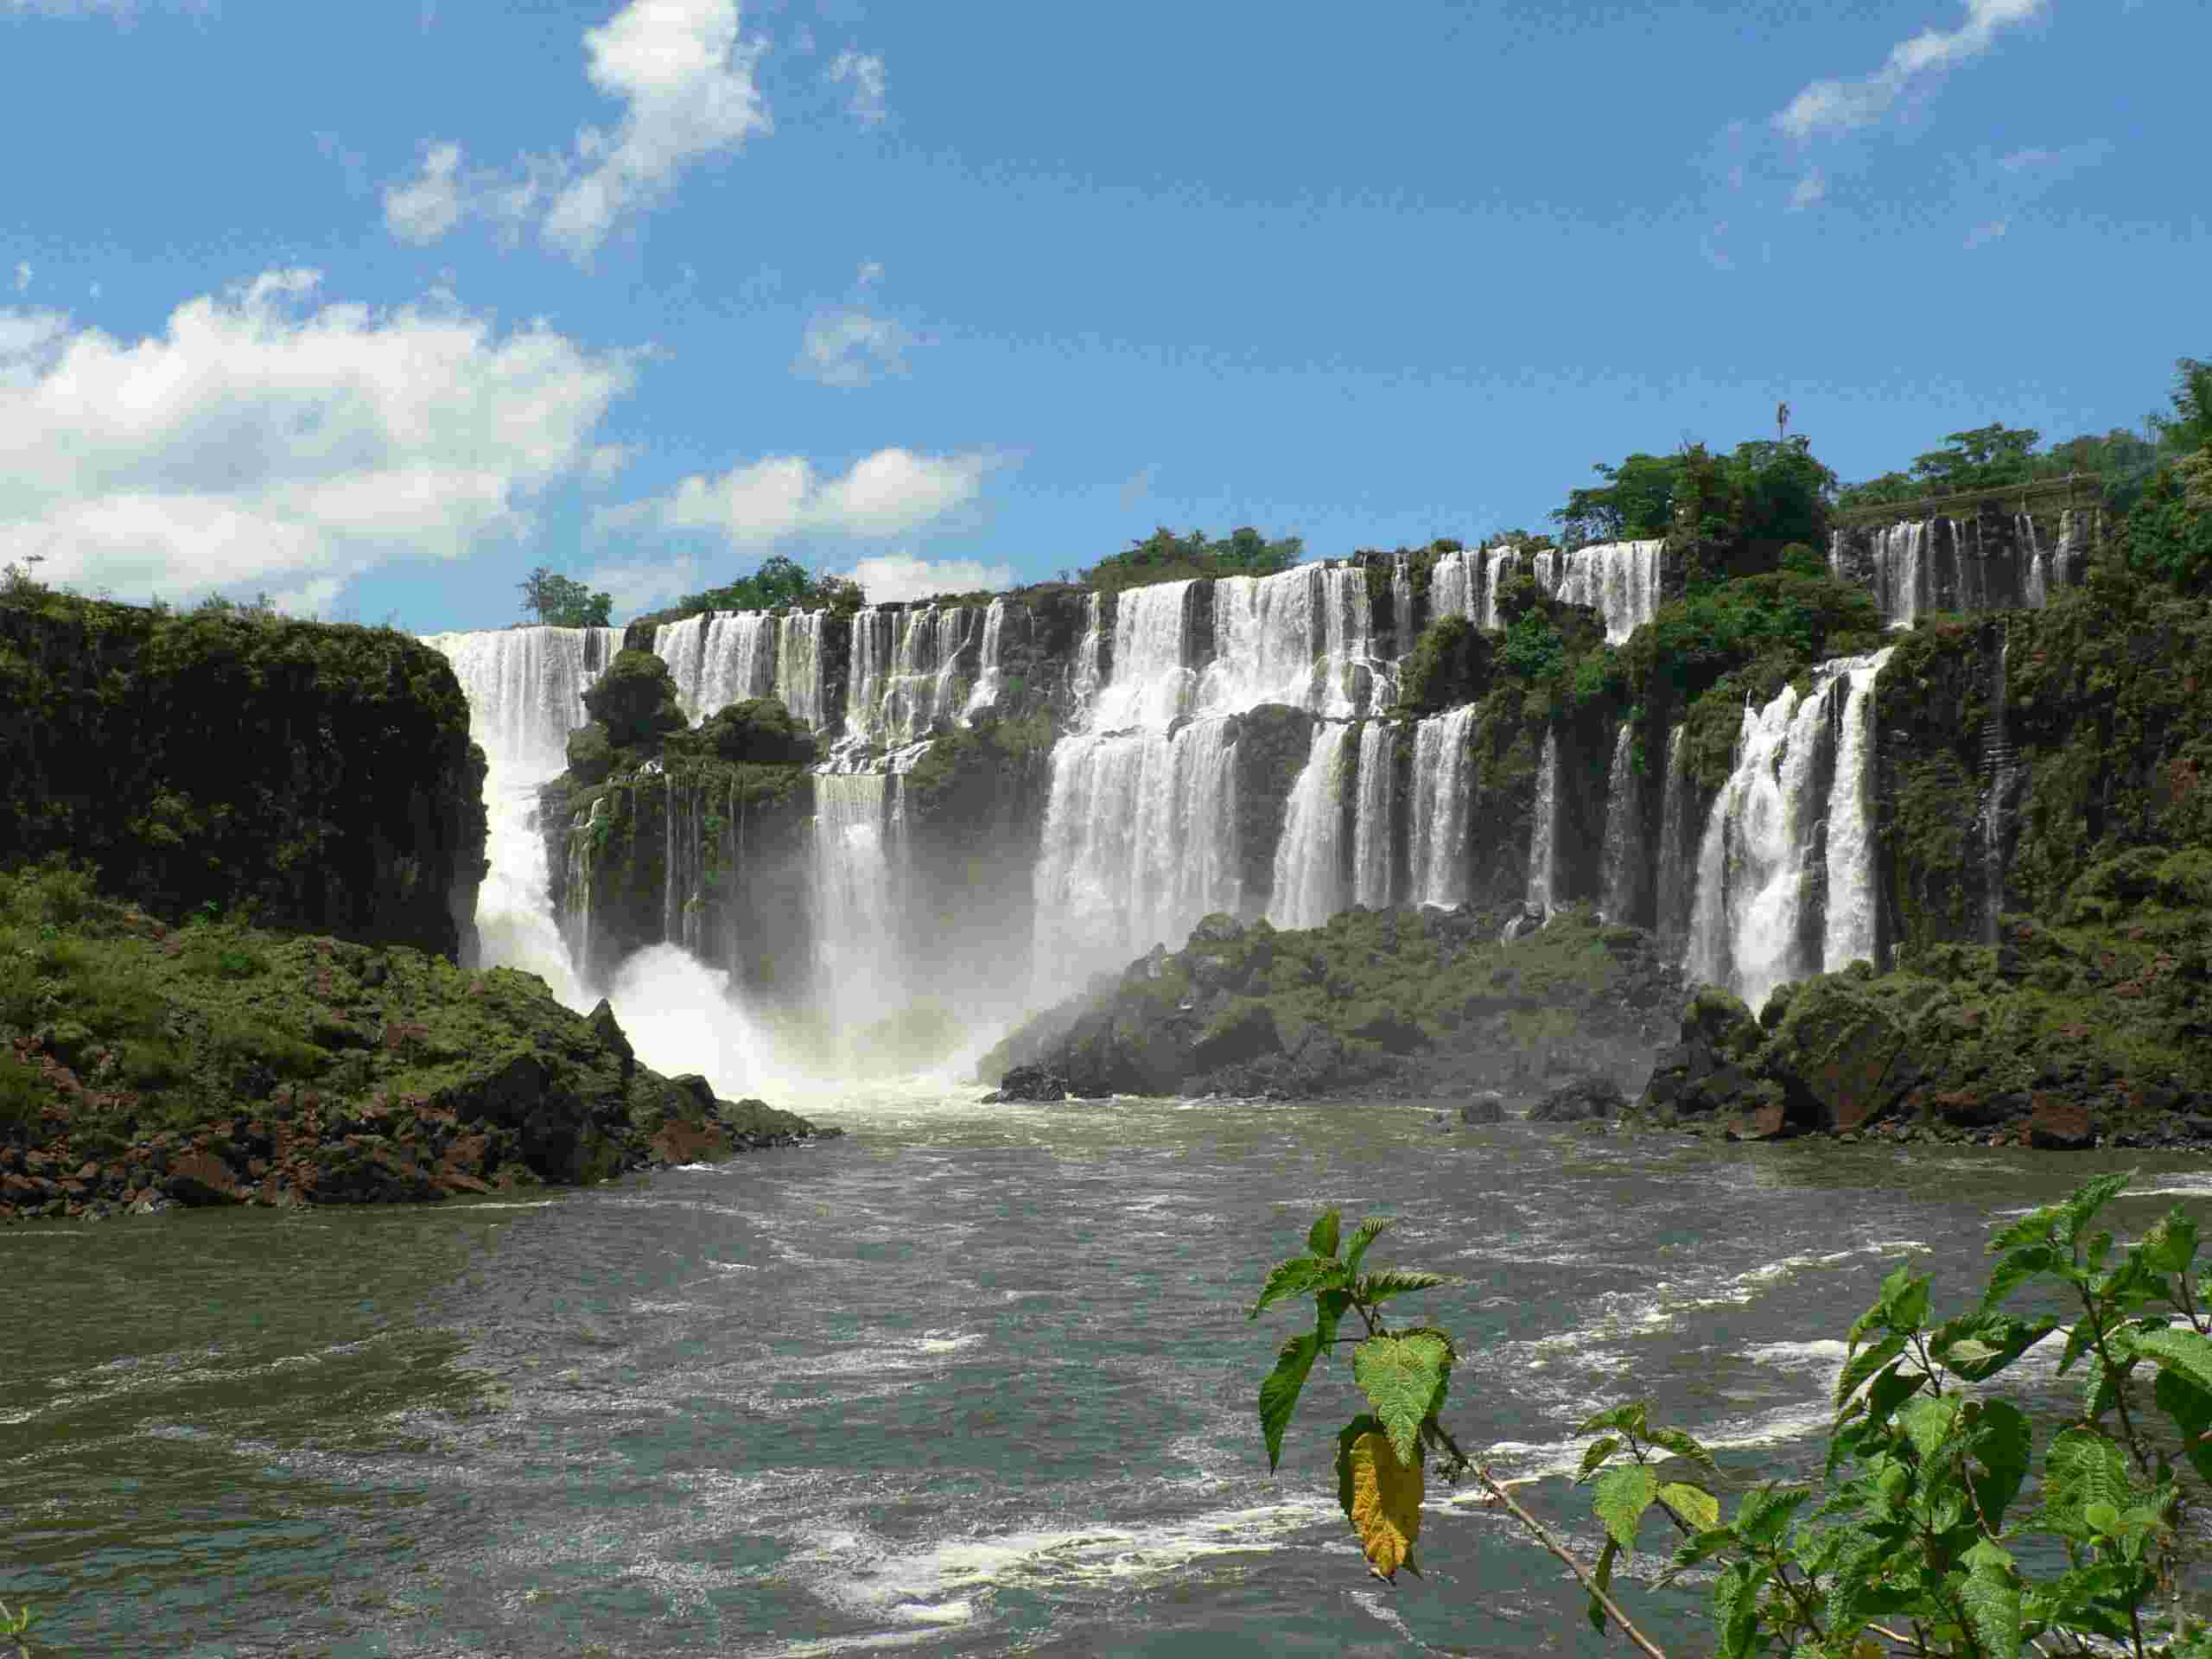 iguazu falls Iguassu falls is the international name of the falls, however is is referred locally as iguazu falls (spanish) and iguaca falls (portuguese) the falls are located on the border of brazil and argentina and not far from paraguay.